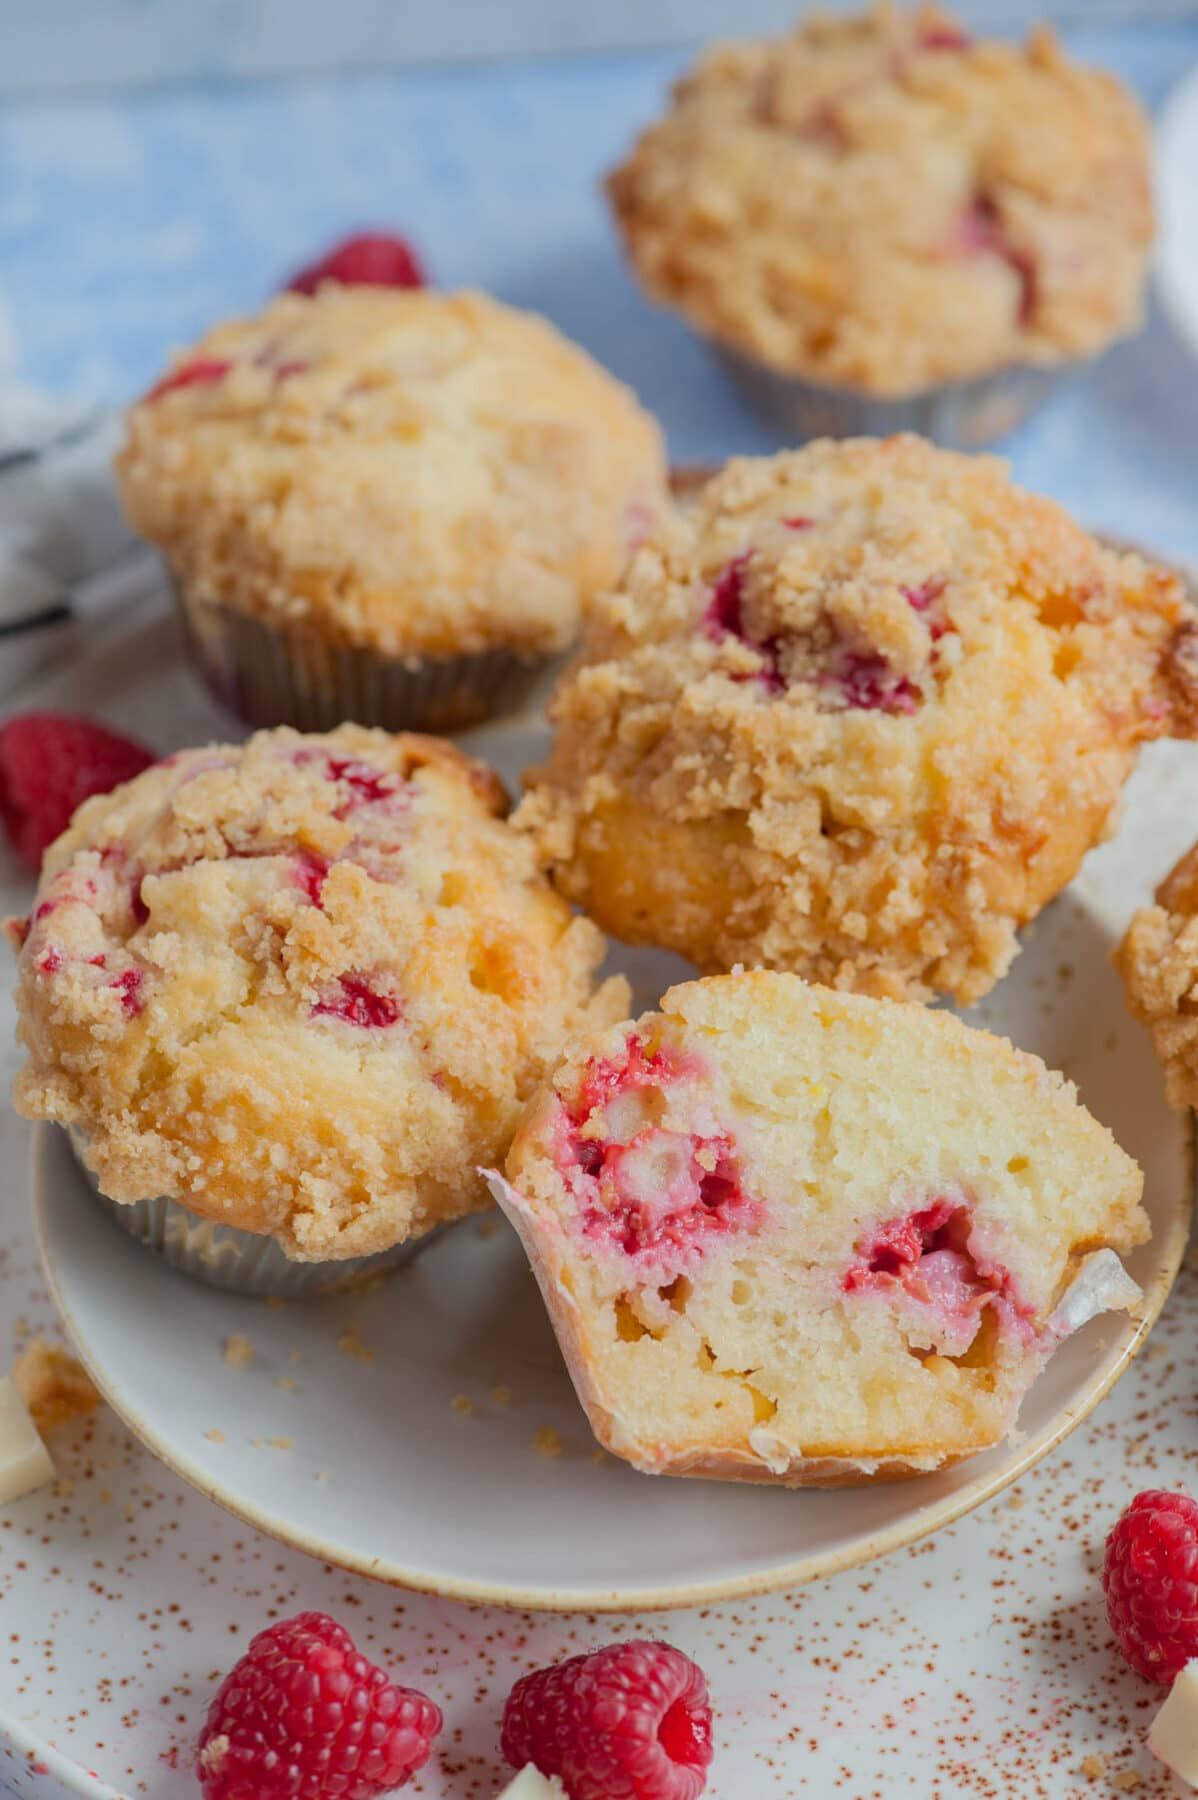 Raspberry muffins on a white plate. Raspberries and white chocolate chunks scattered around.